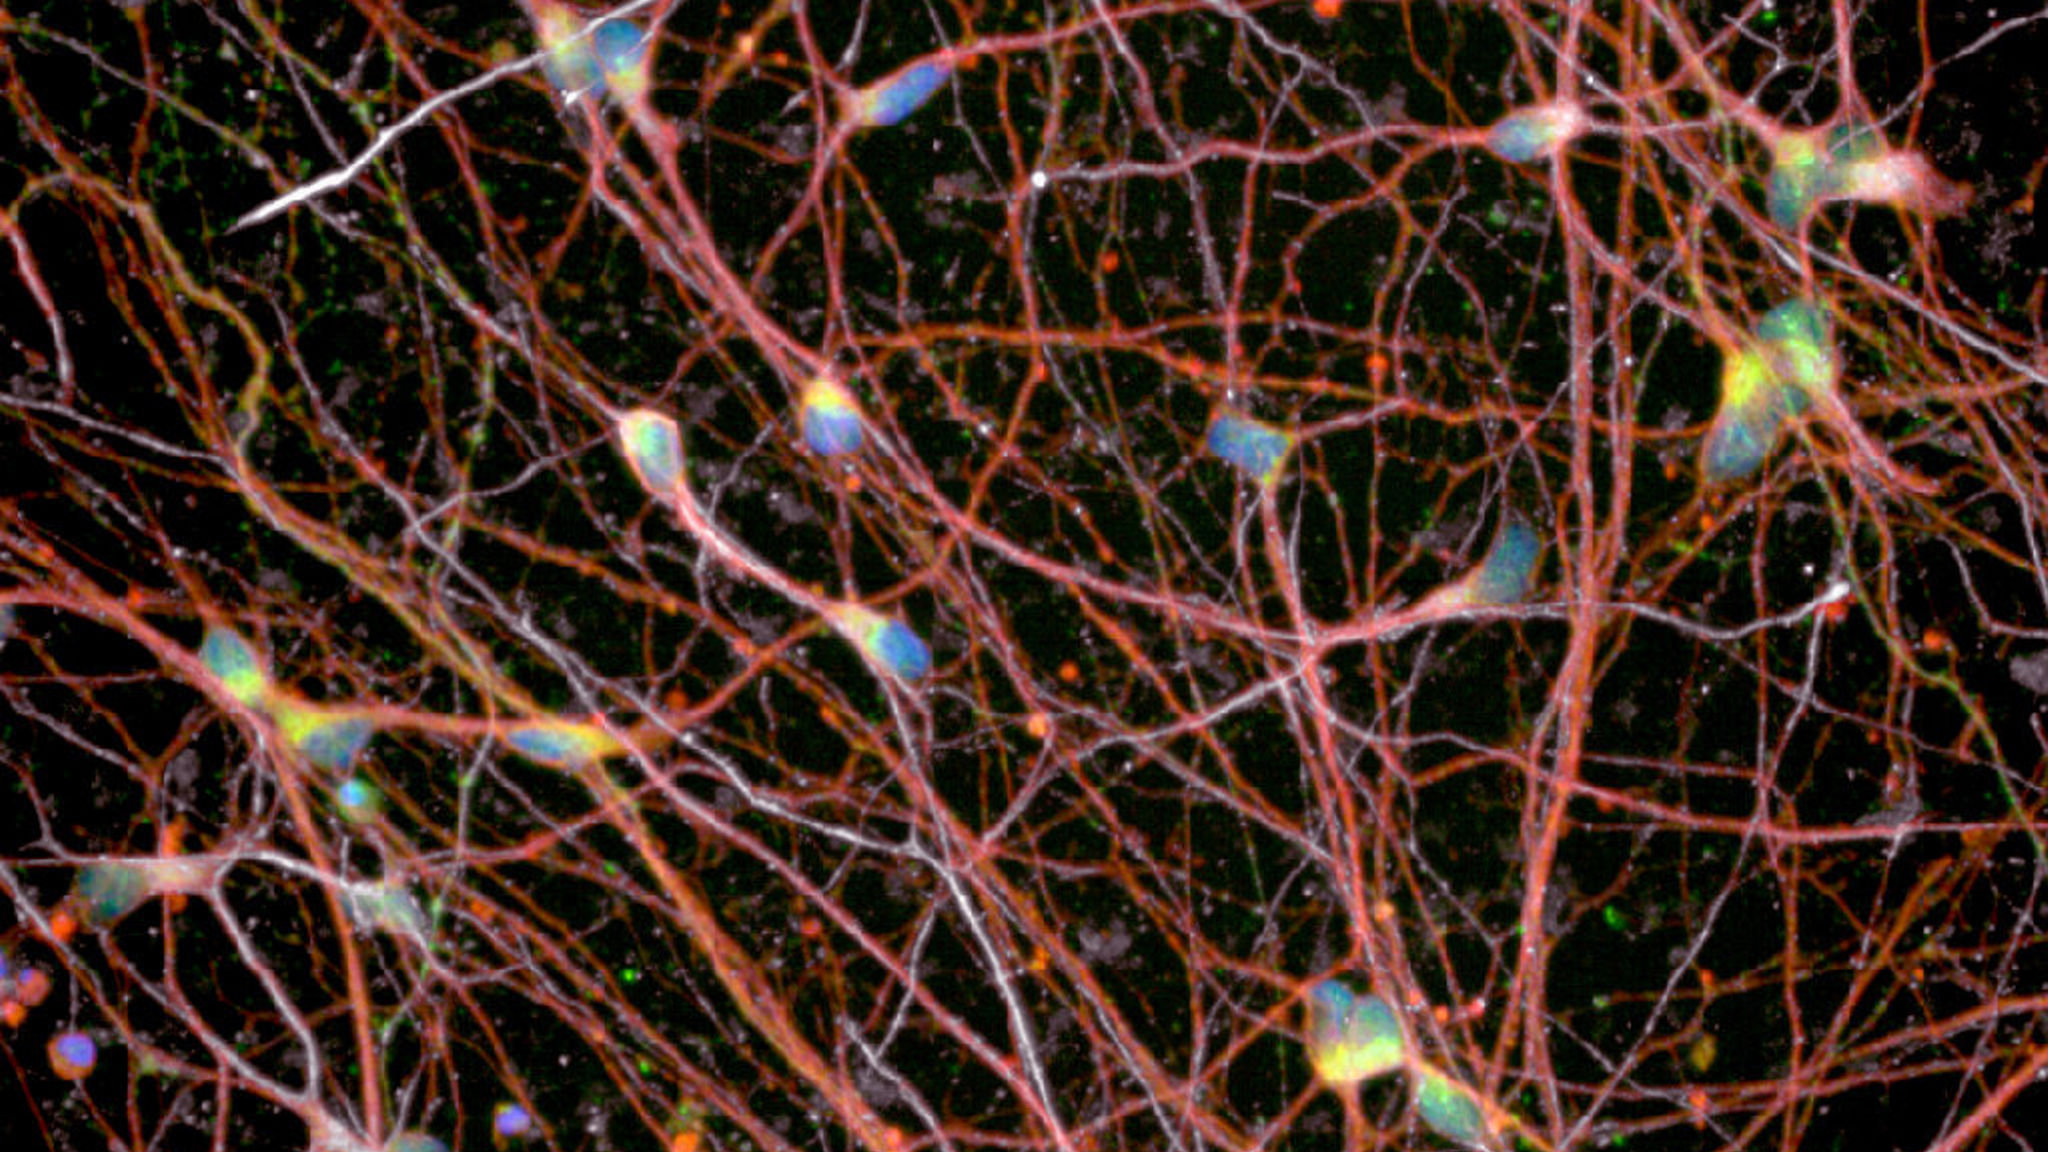 Search for motor neurone disease cure gathers pace